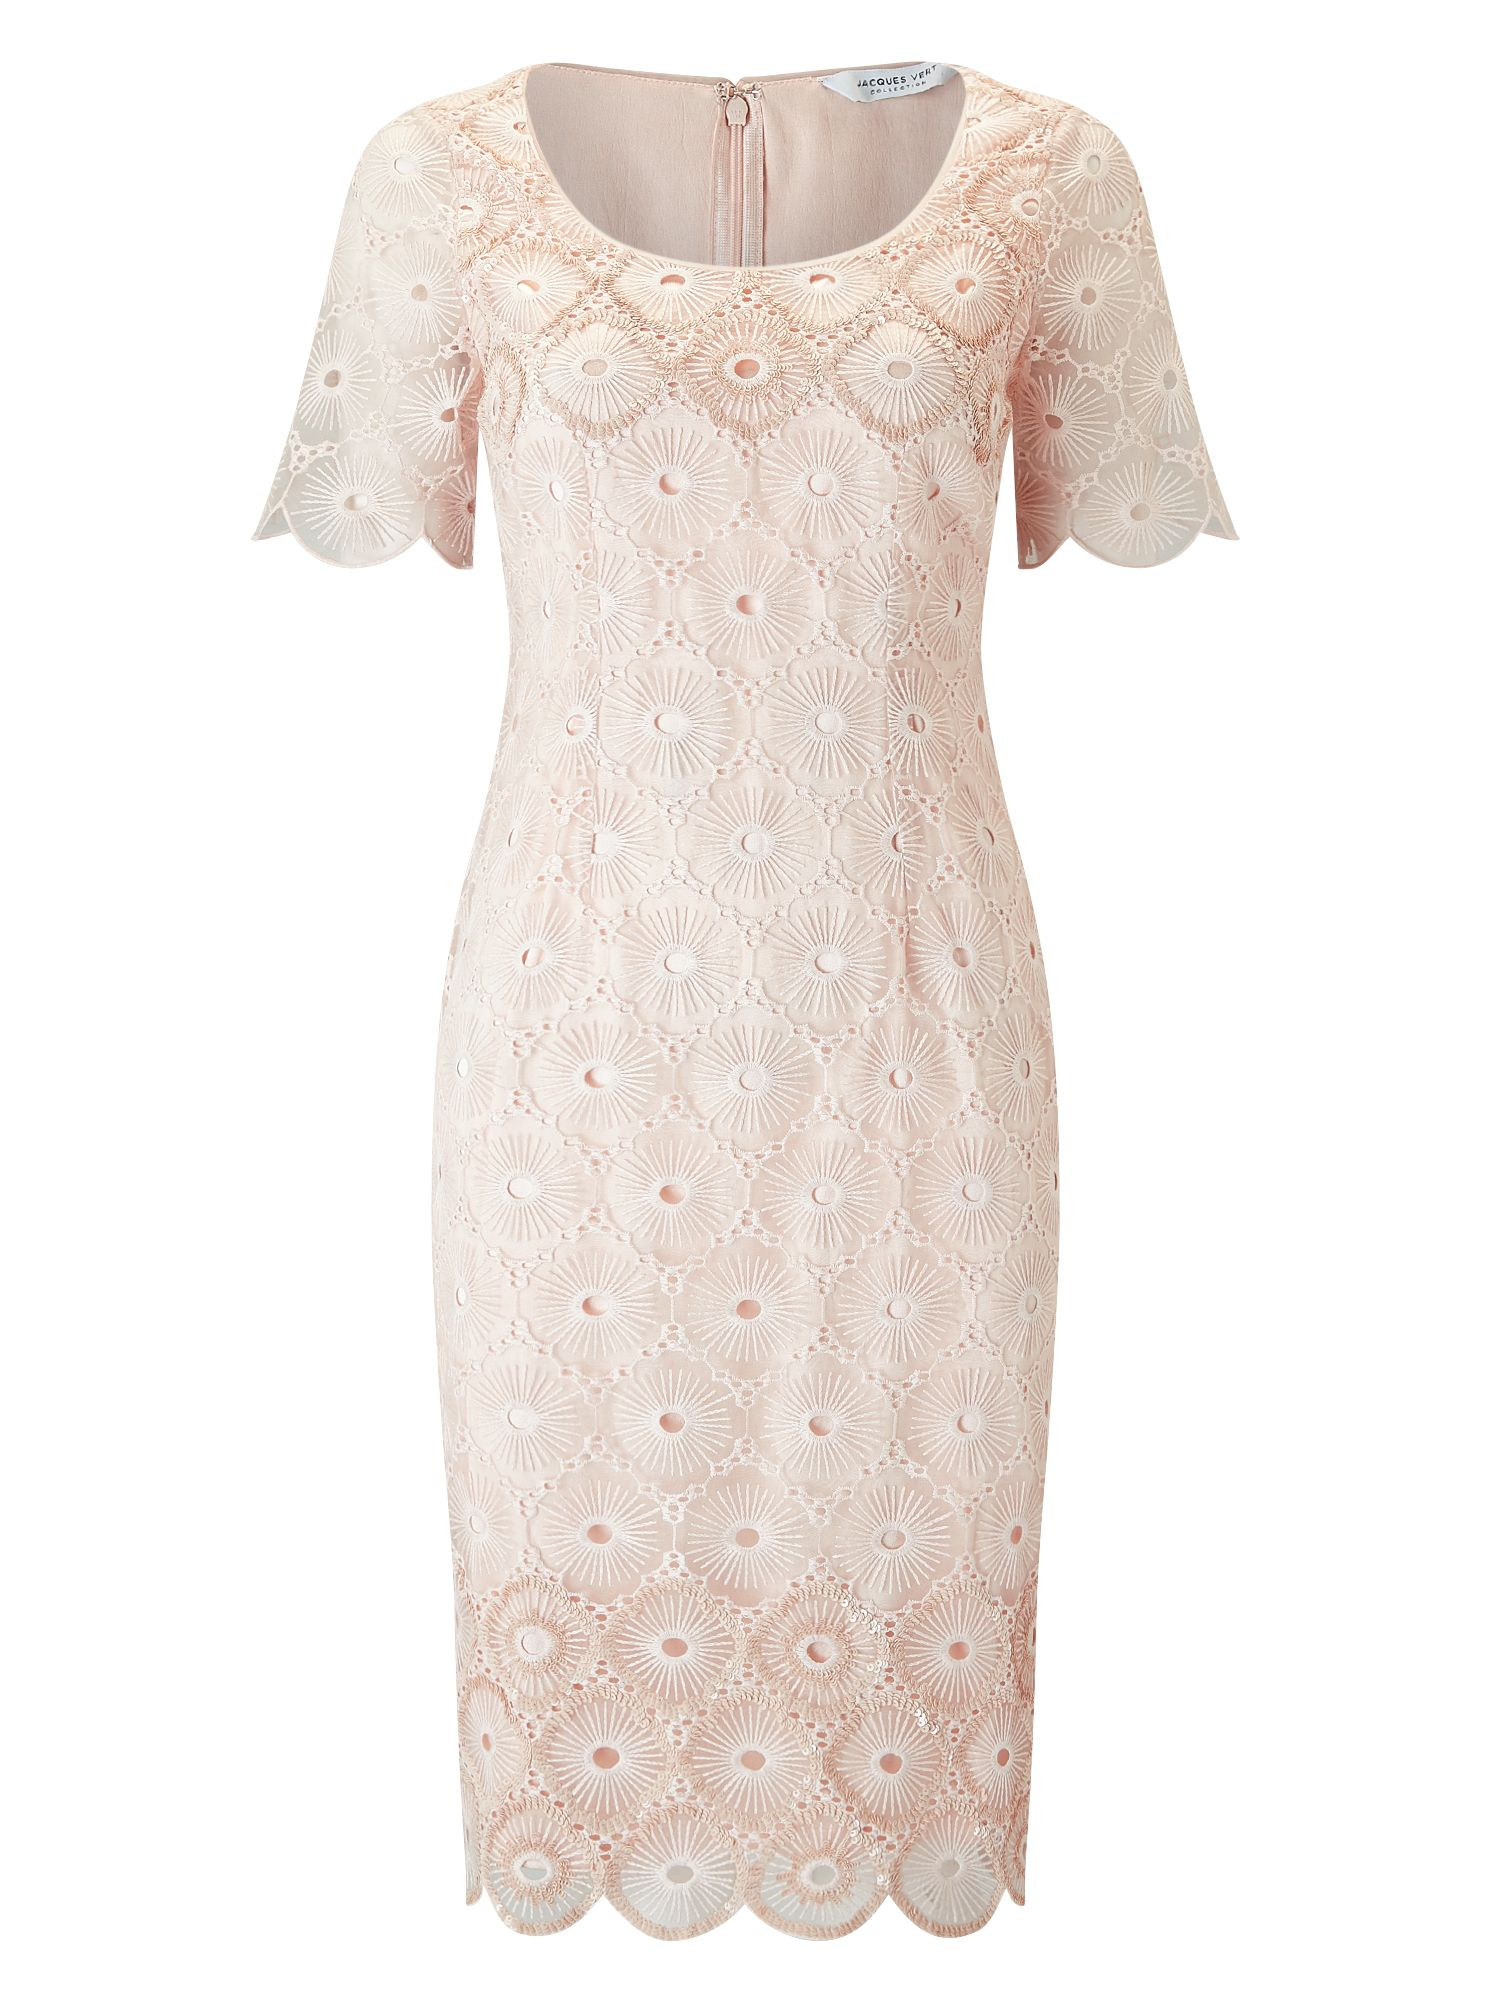 Jacques Vert Sequin Emb Anglaise Dress, Neutral